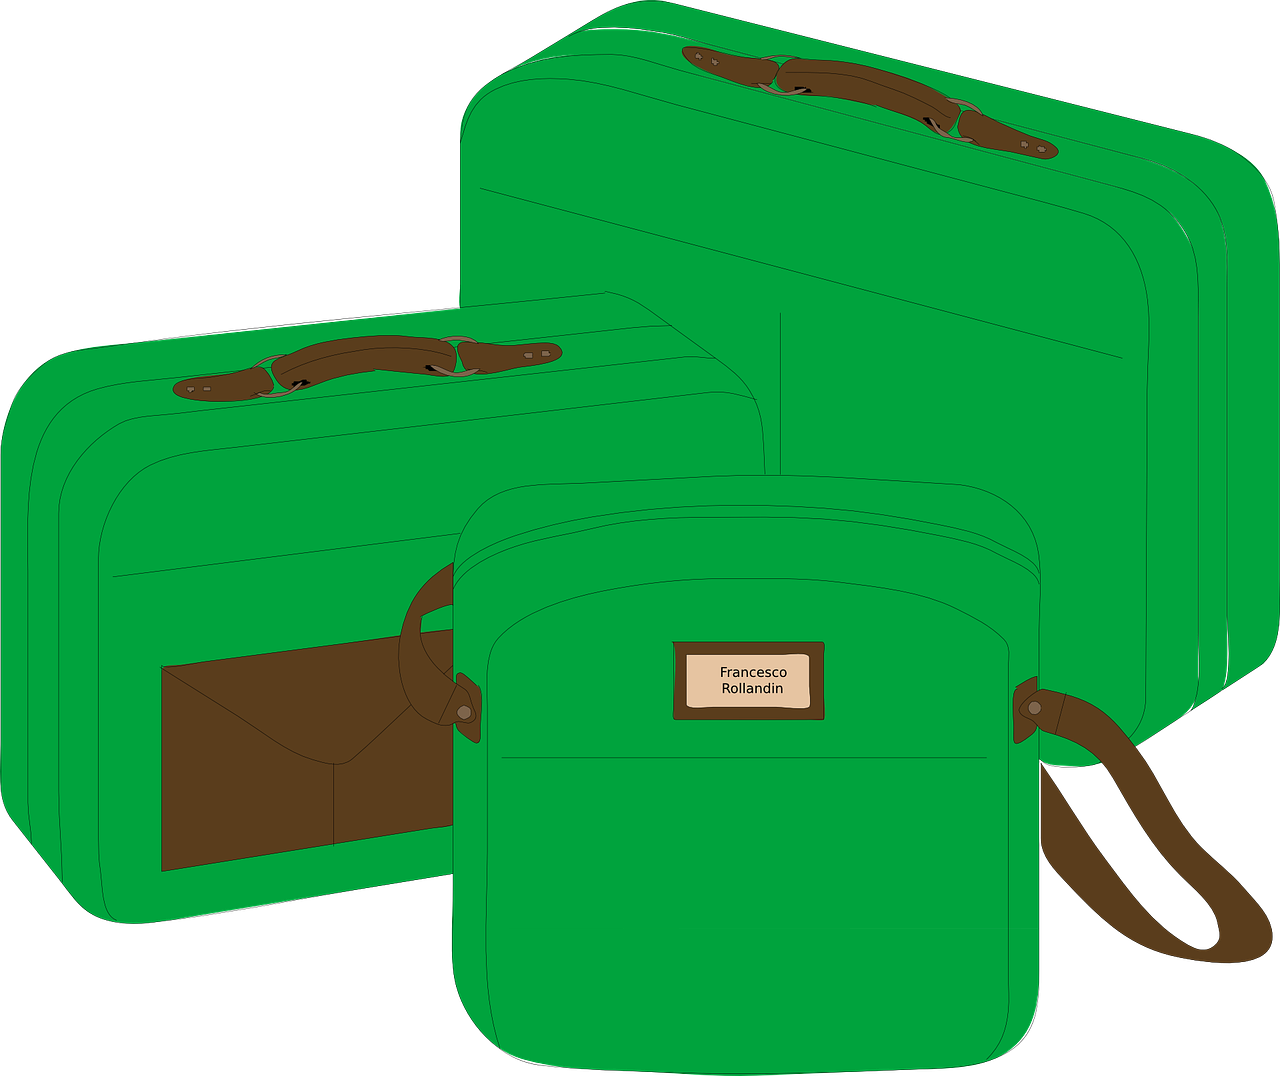 The privilege aja barber. Luggage clipart empty suitcase